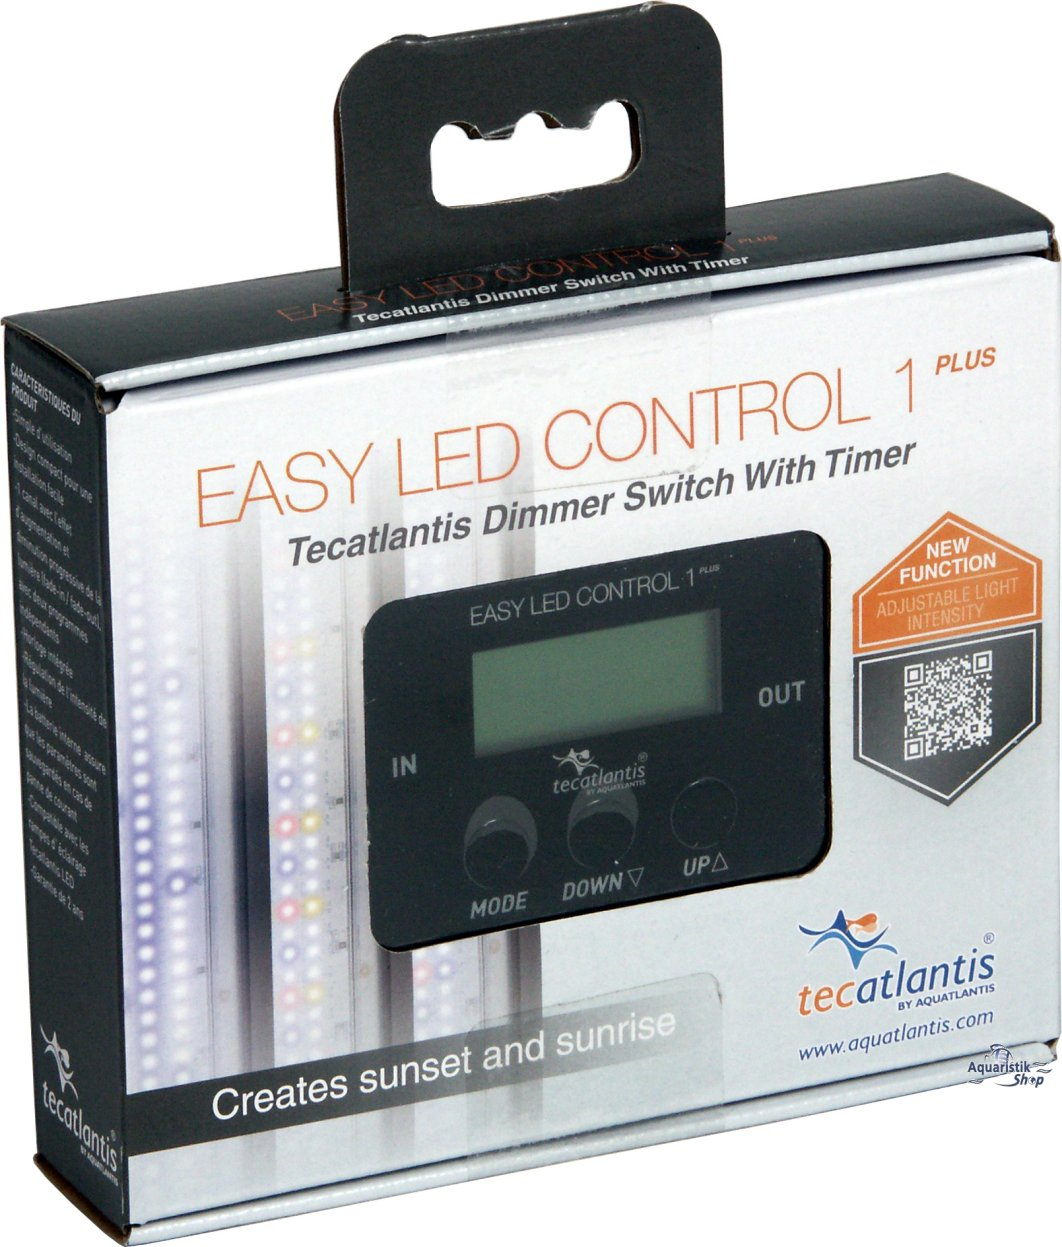 Easy Led Aquatlantis Easy Led Control 1 Plus